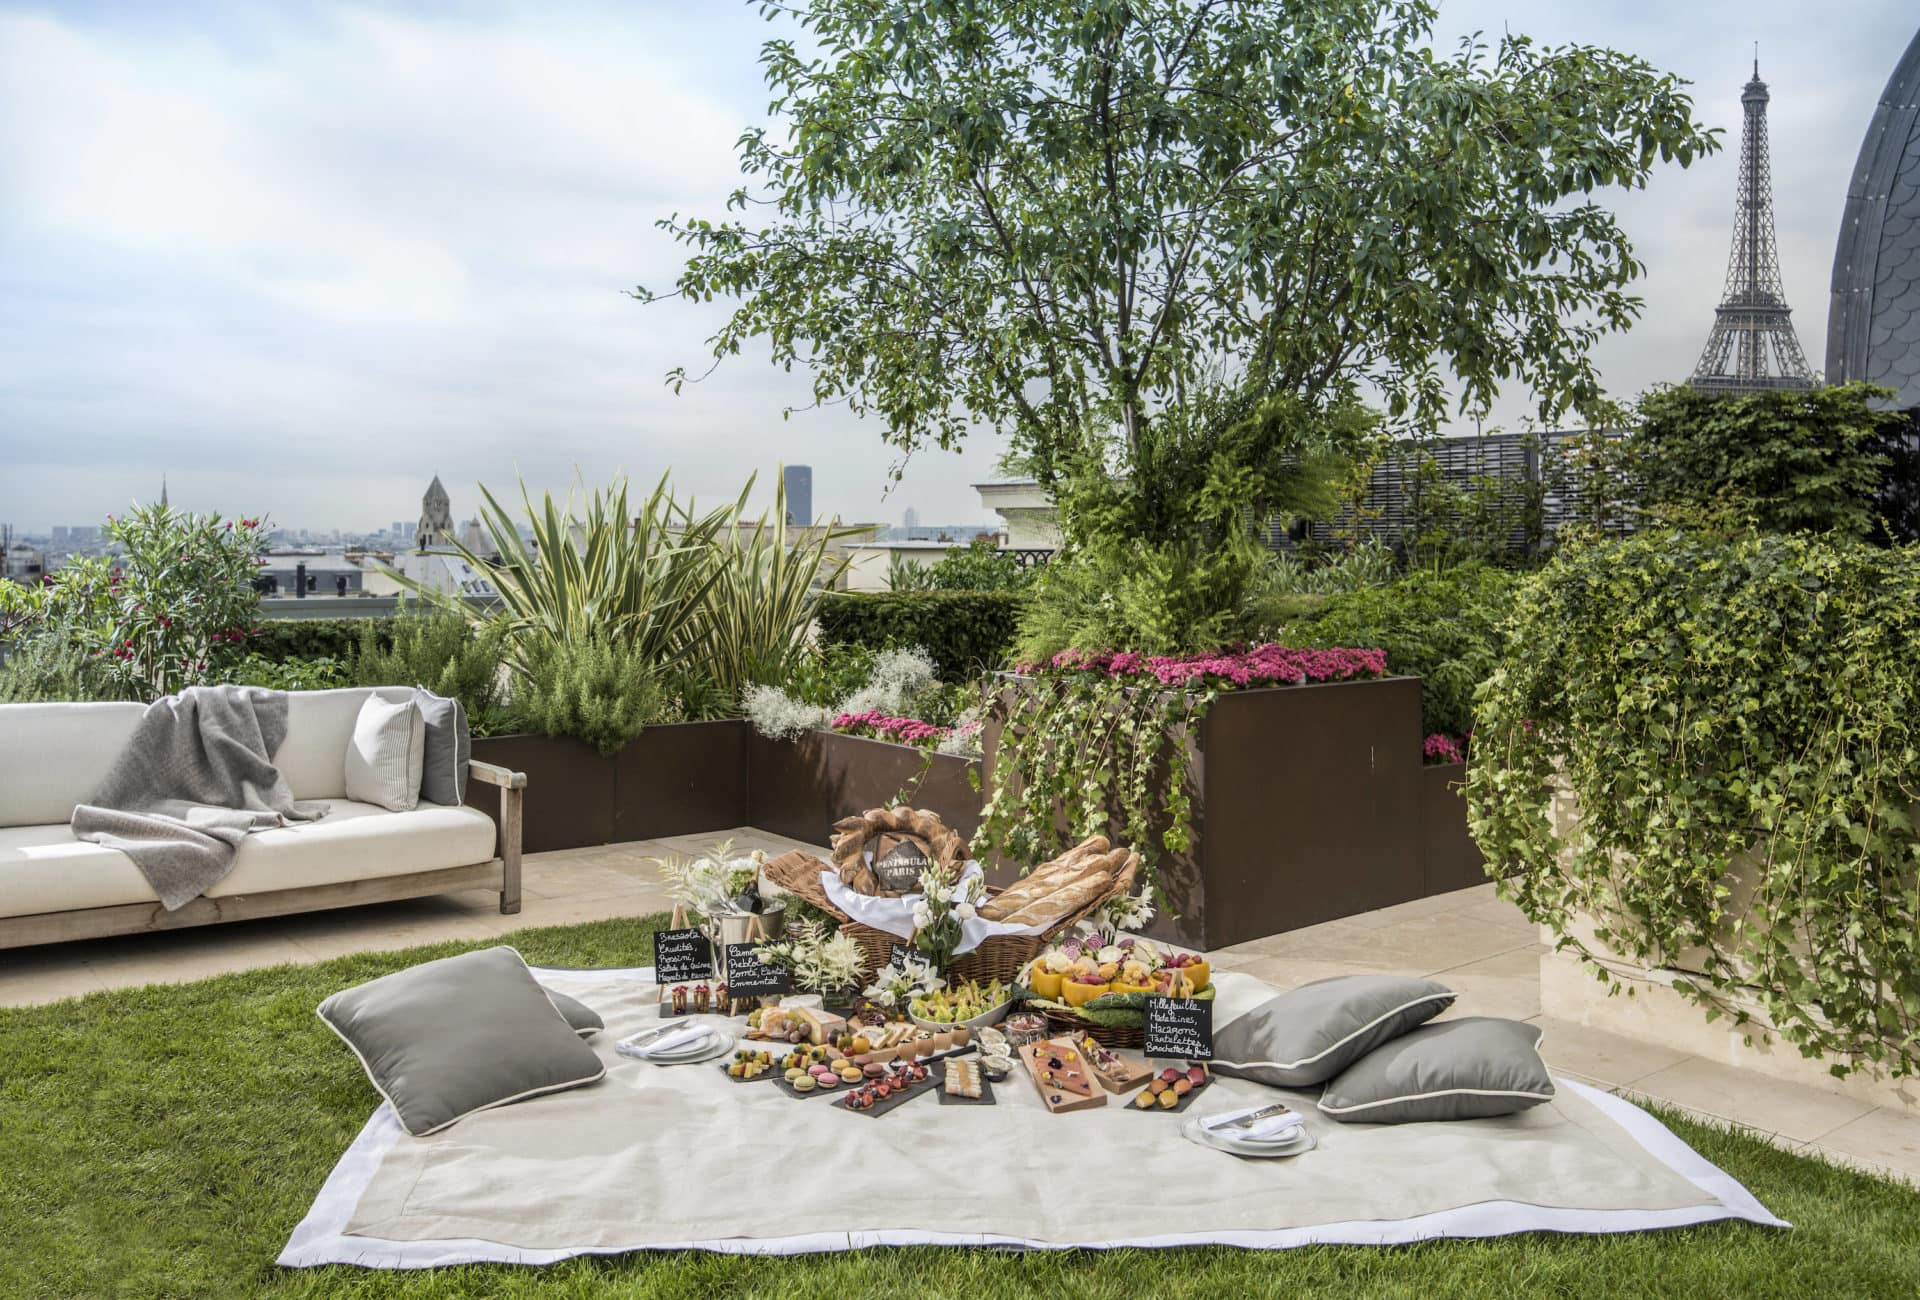 Salon De Jardin Vert Olive The Best Picnic Spots In Paris Where To Sprawl Out This Summer